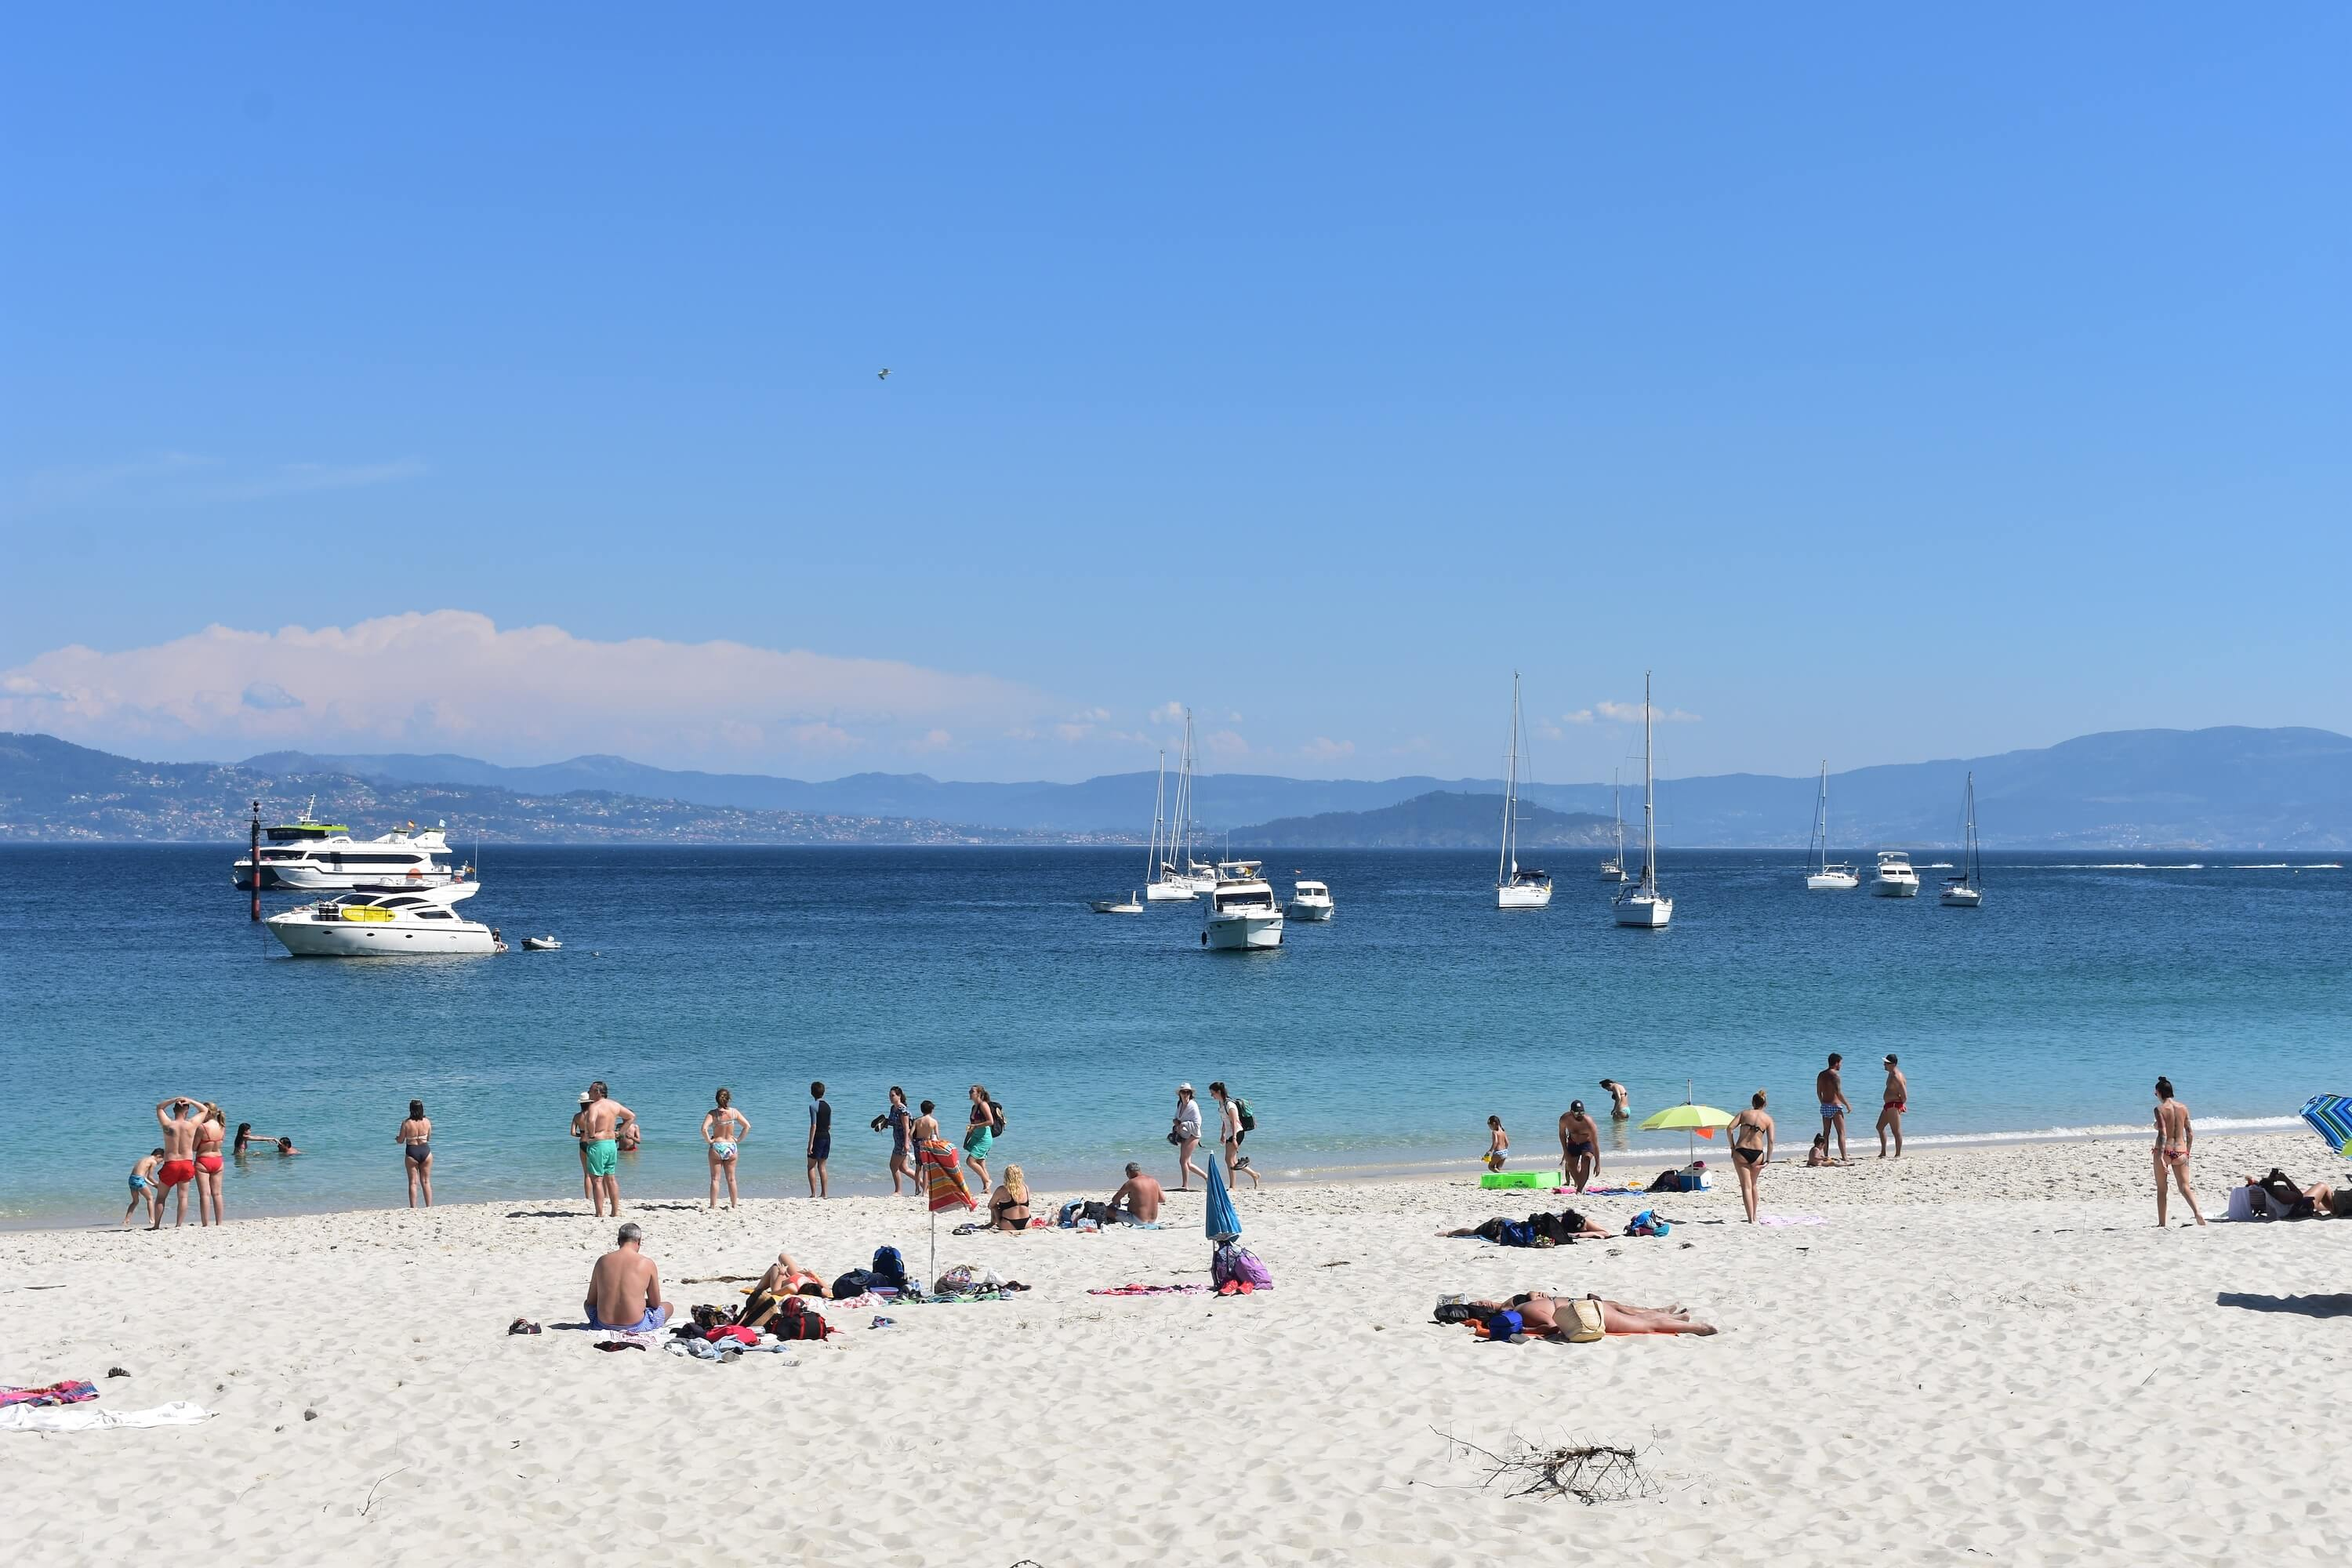 20 Photos to Inspire You to Visit the Cies Islands - Galicia Spain Travel